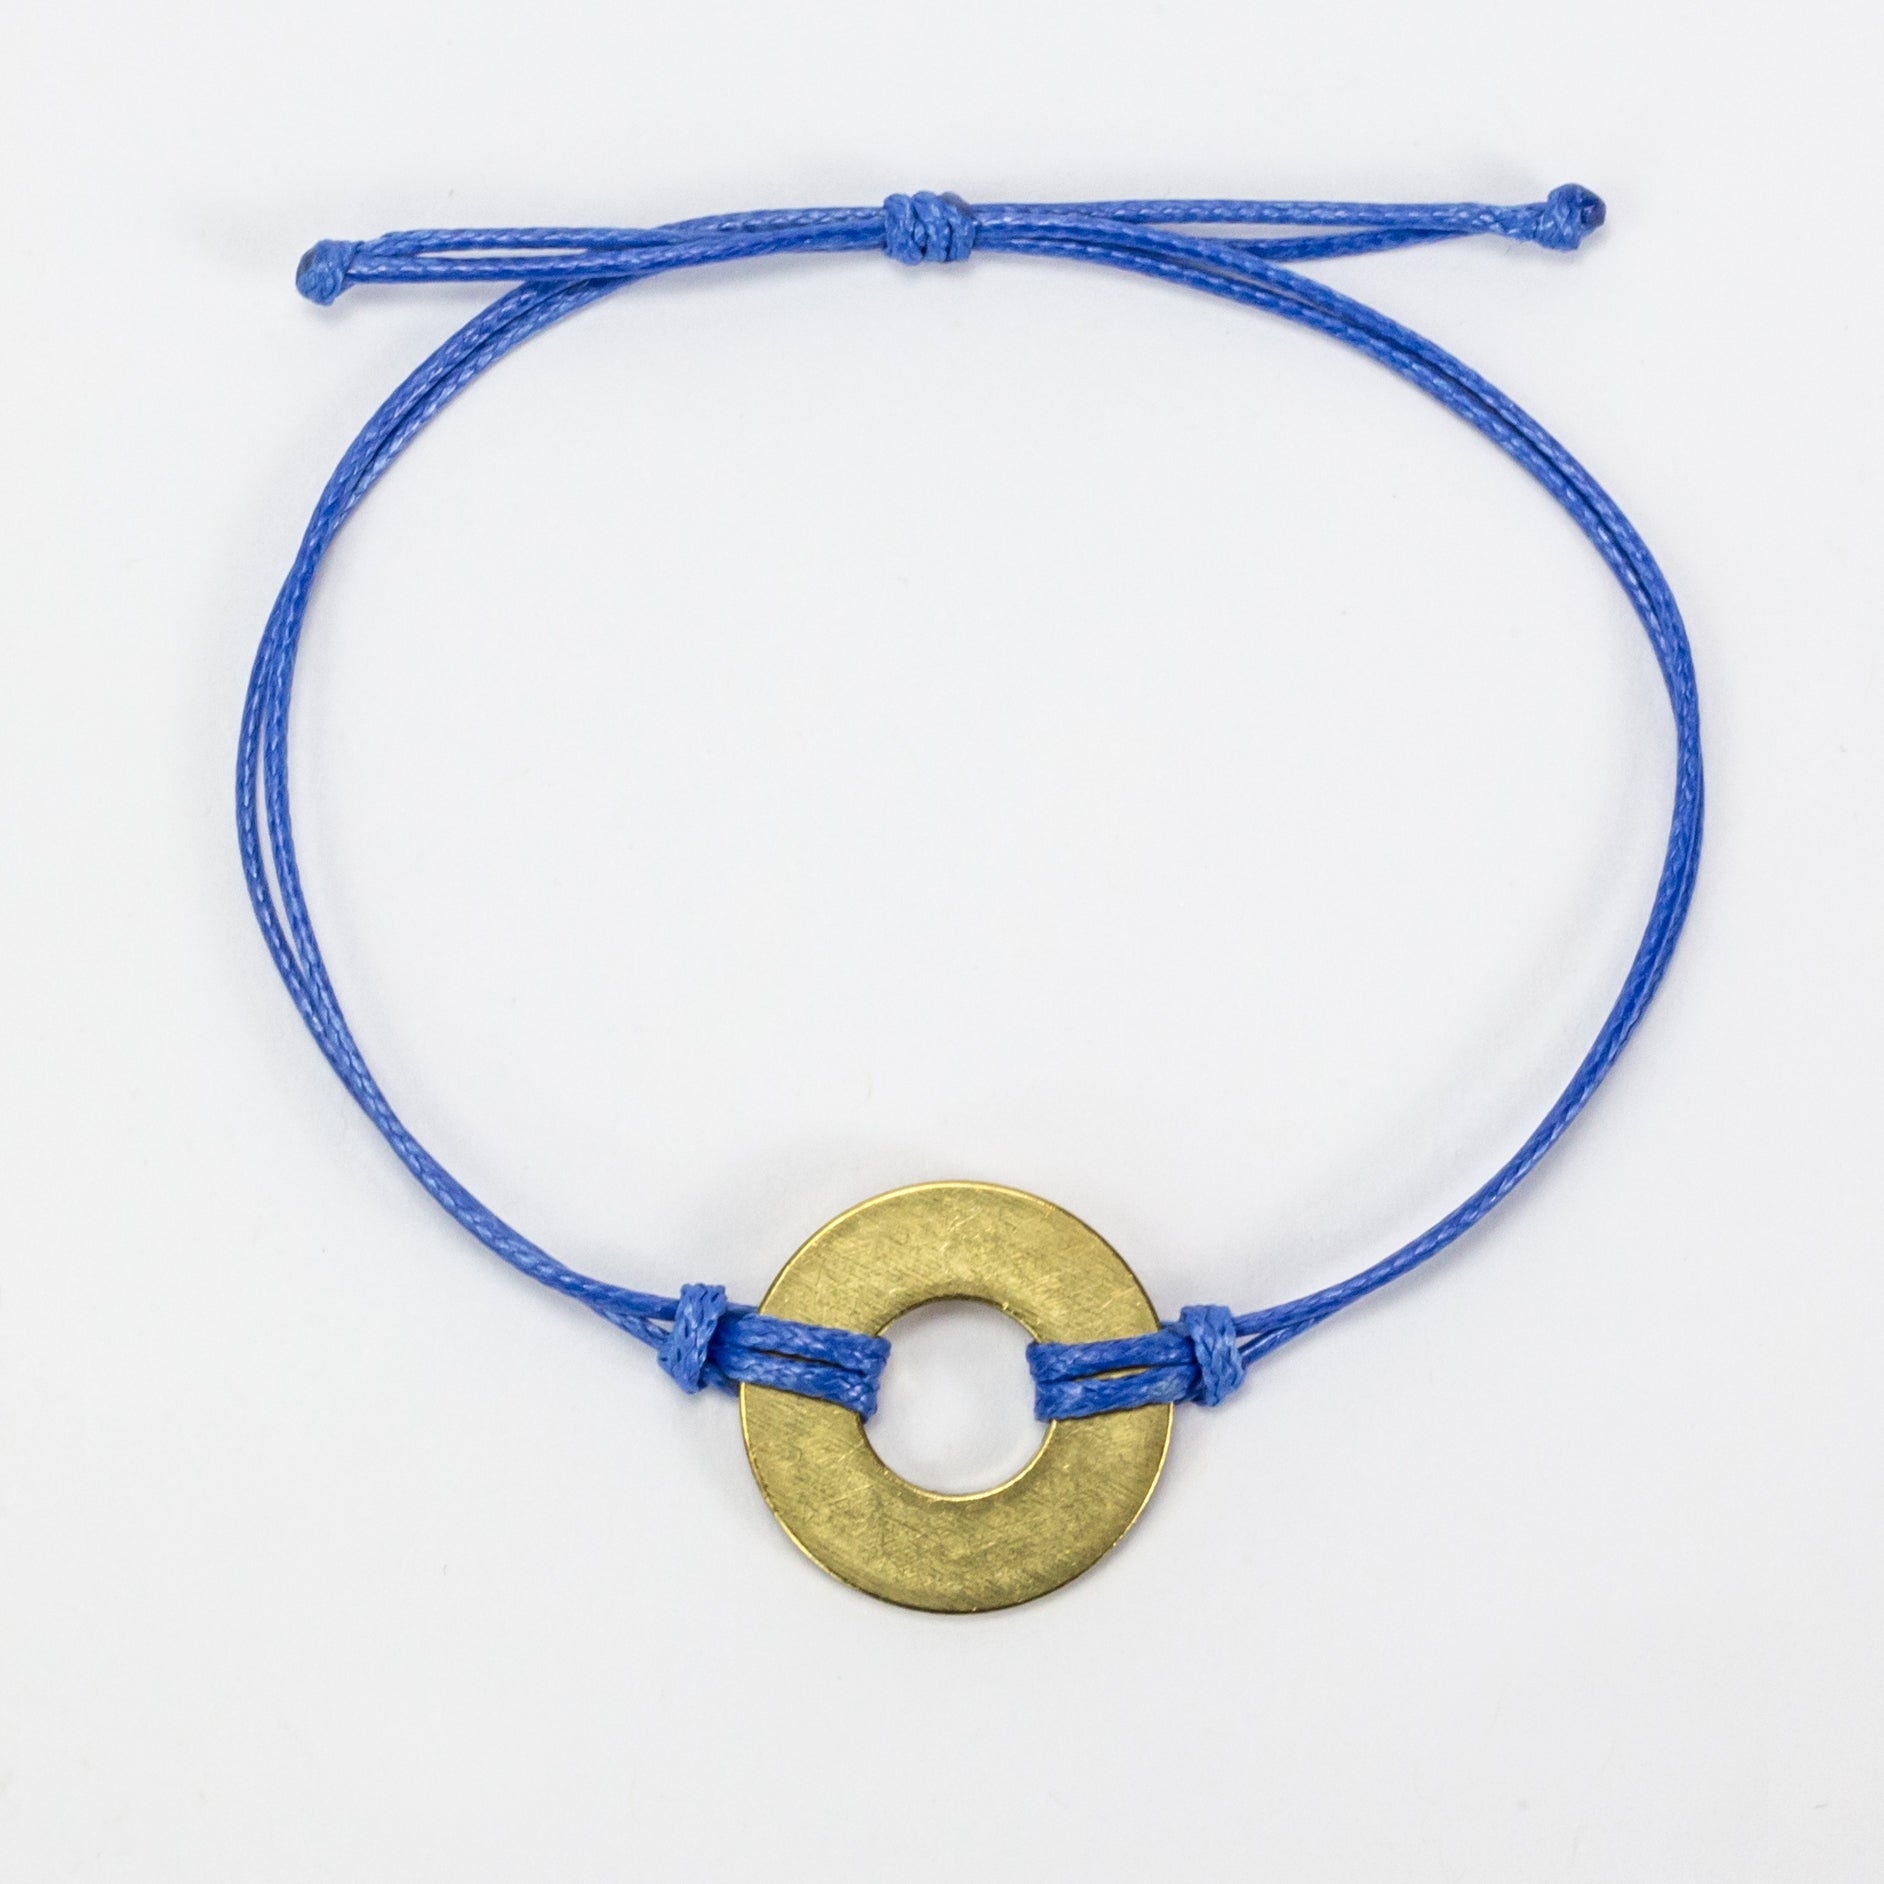 MyIntent Refill Classic Bracelet Blue String with Brass token